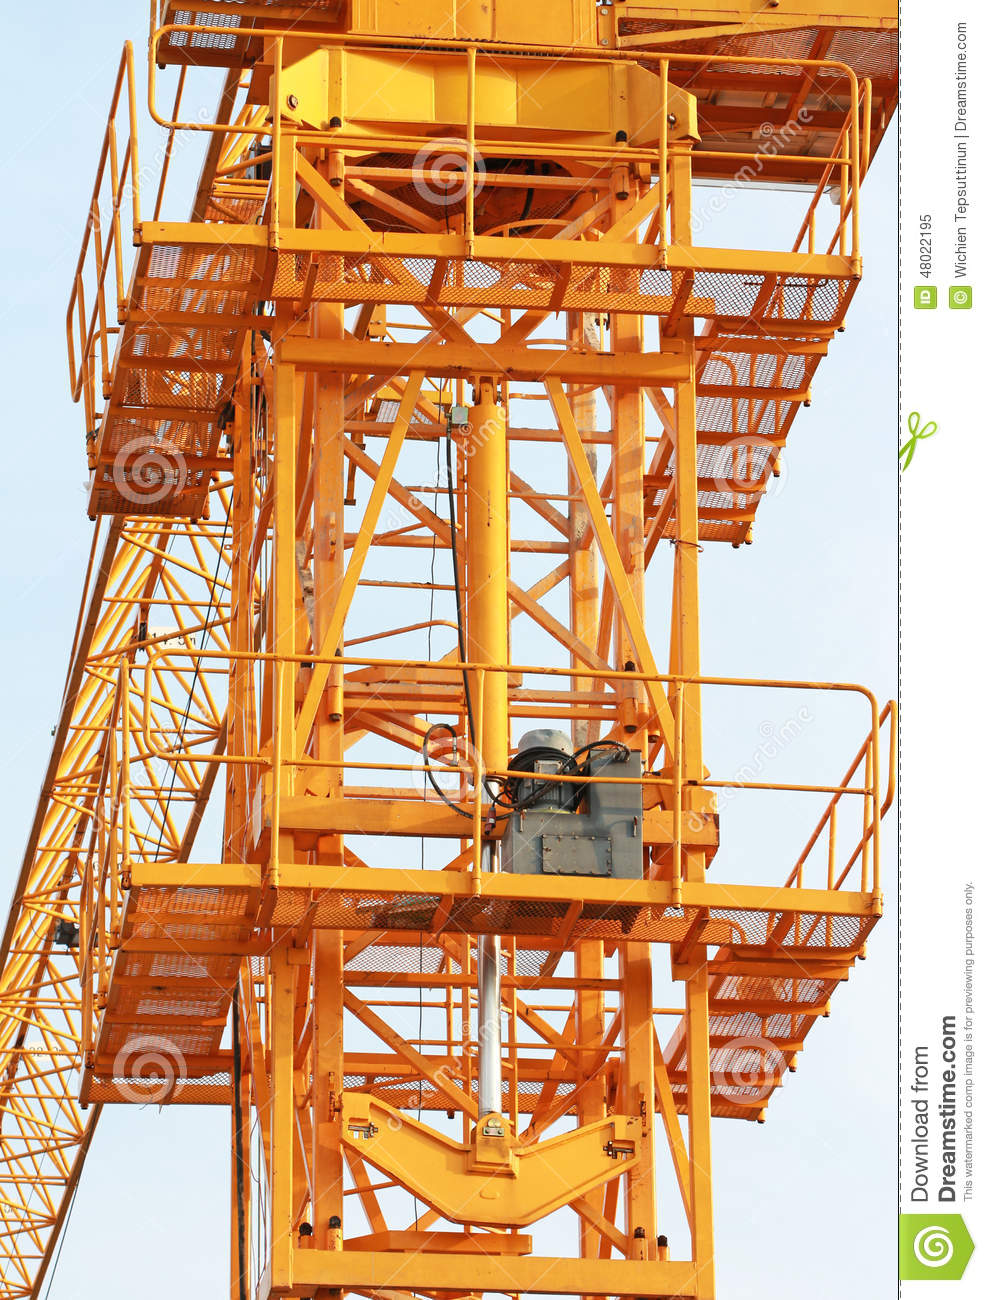 Crane Hydraulic Jack : Hydraulic jacks of tower crane front view stock image